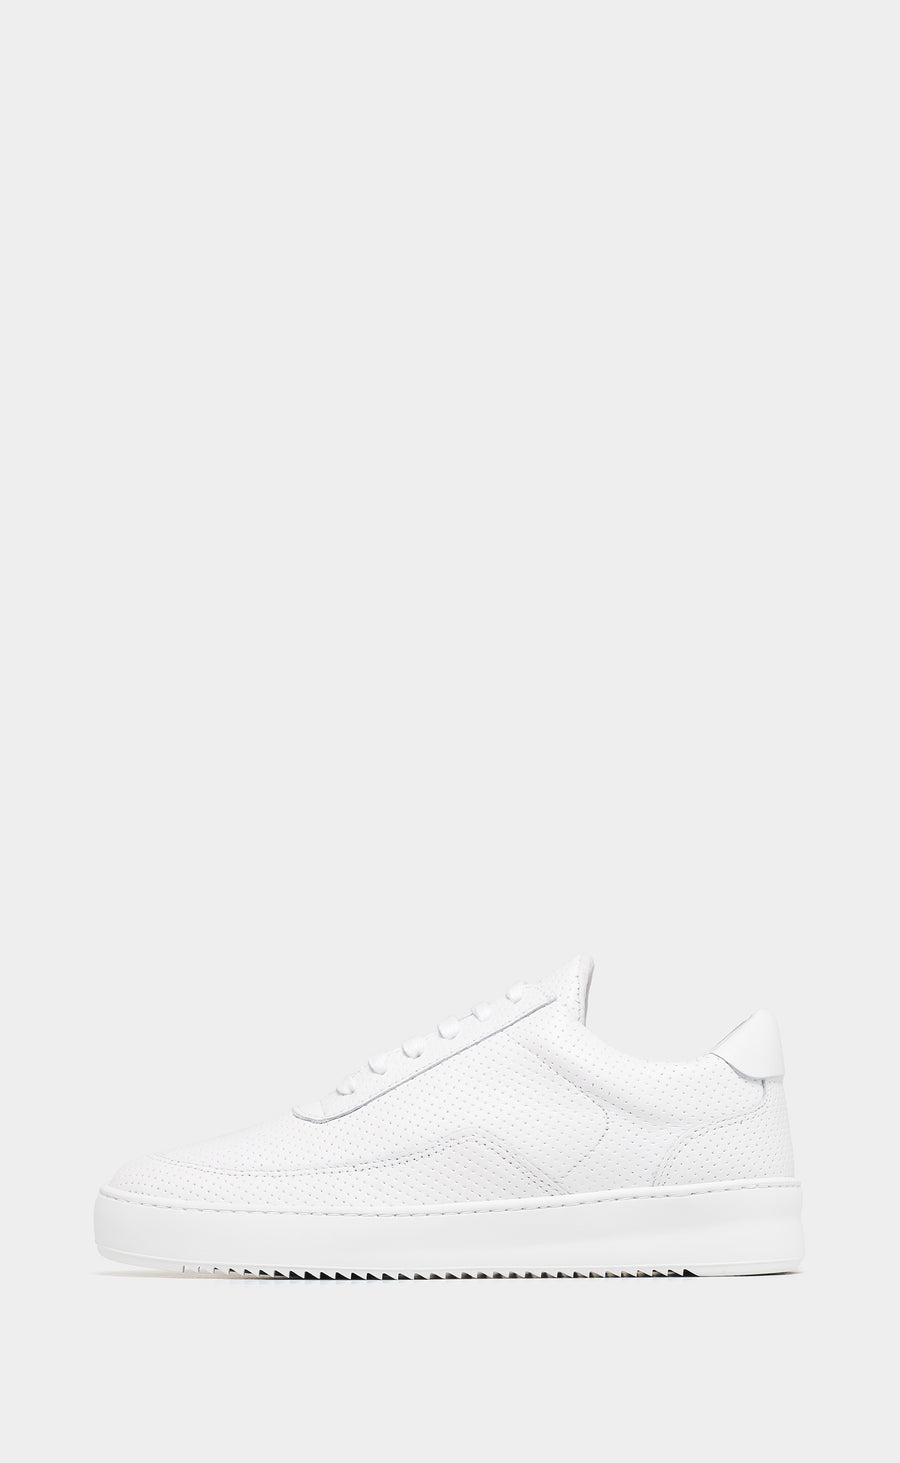 Low Mondo Ripple Nappa Perforated All White